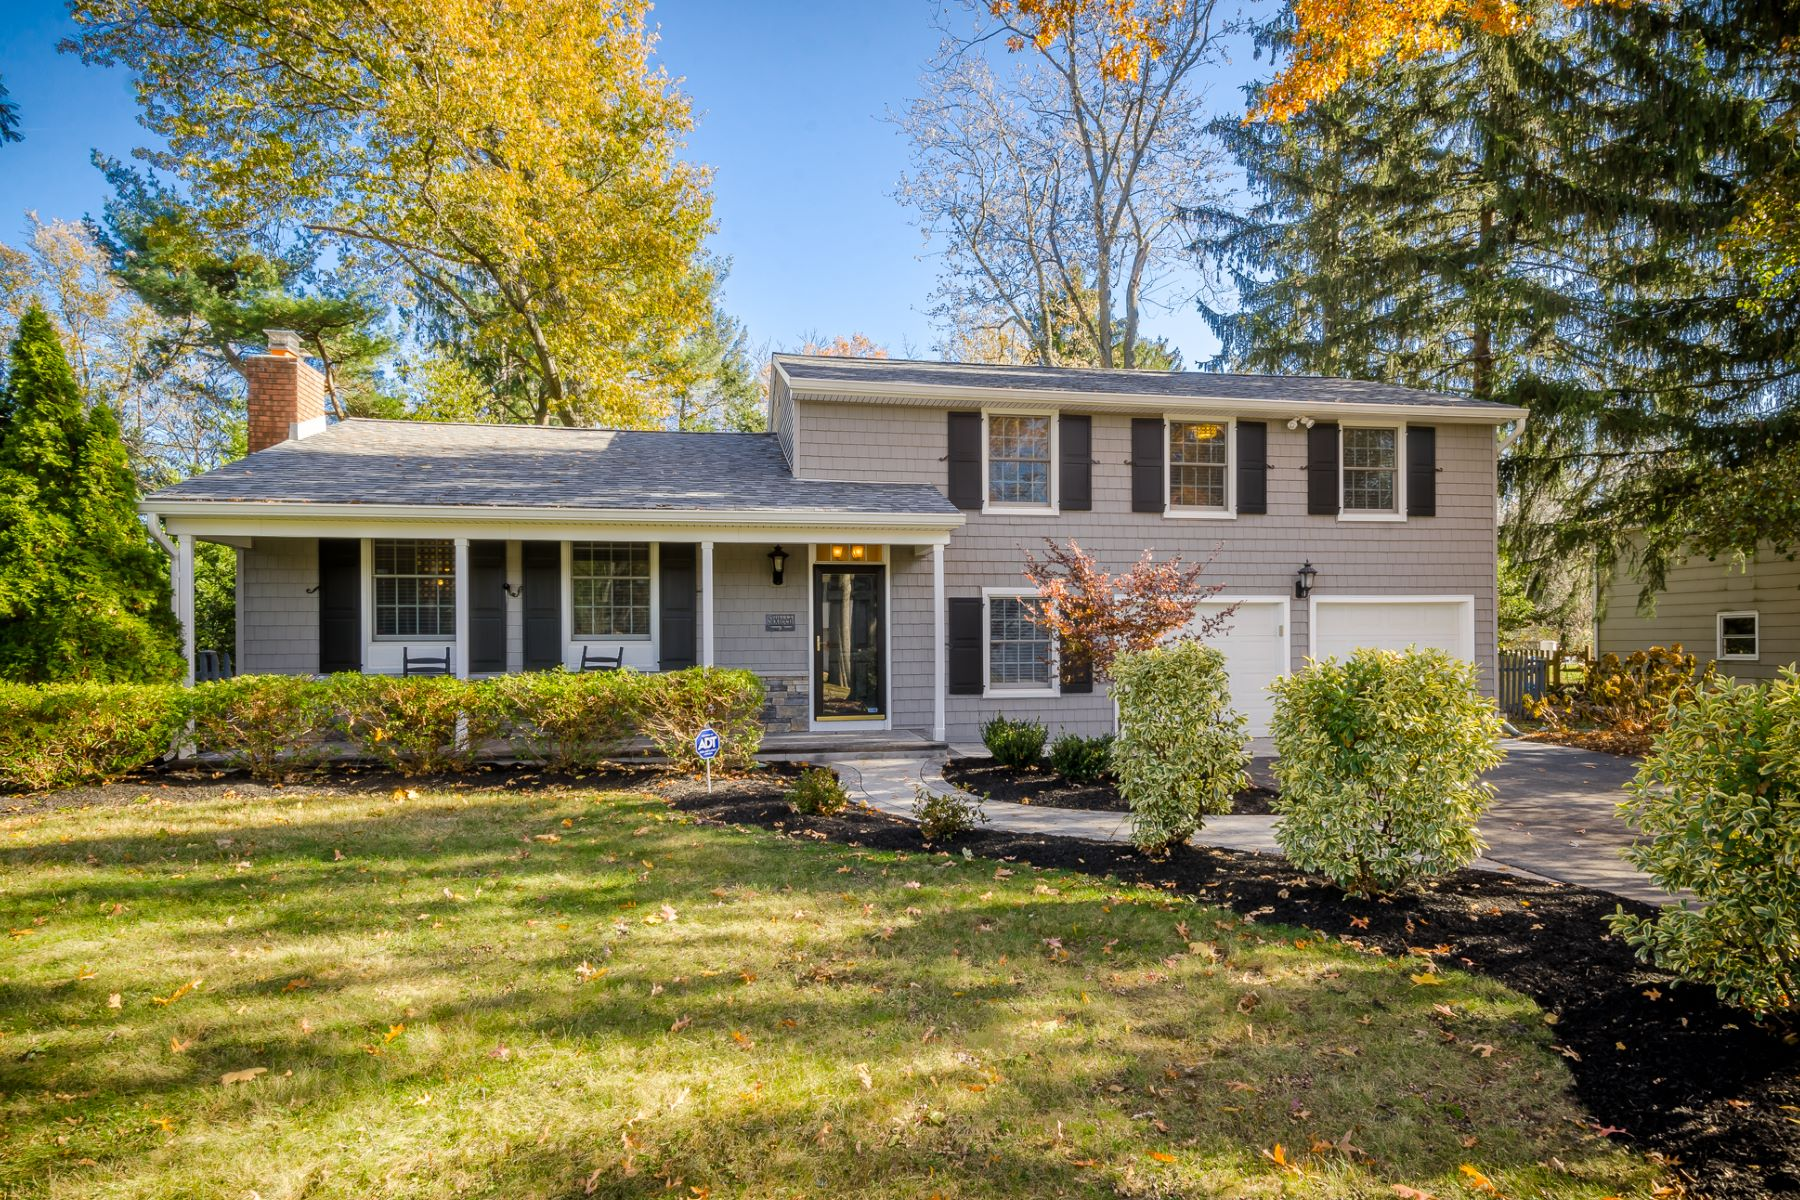 Single Family Homes for Active at Completely Charming and Up-to-Date in Cranbury 16 Ryan Road Cranbury, New Jersey 08512 United States